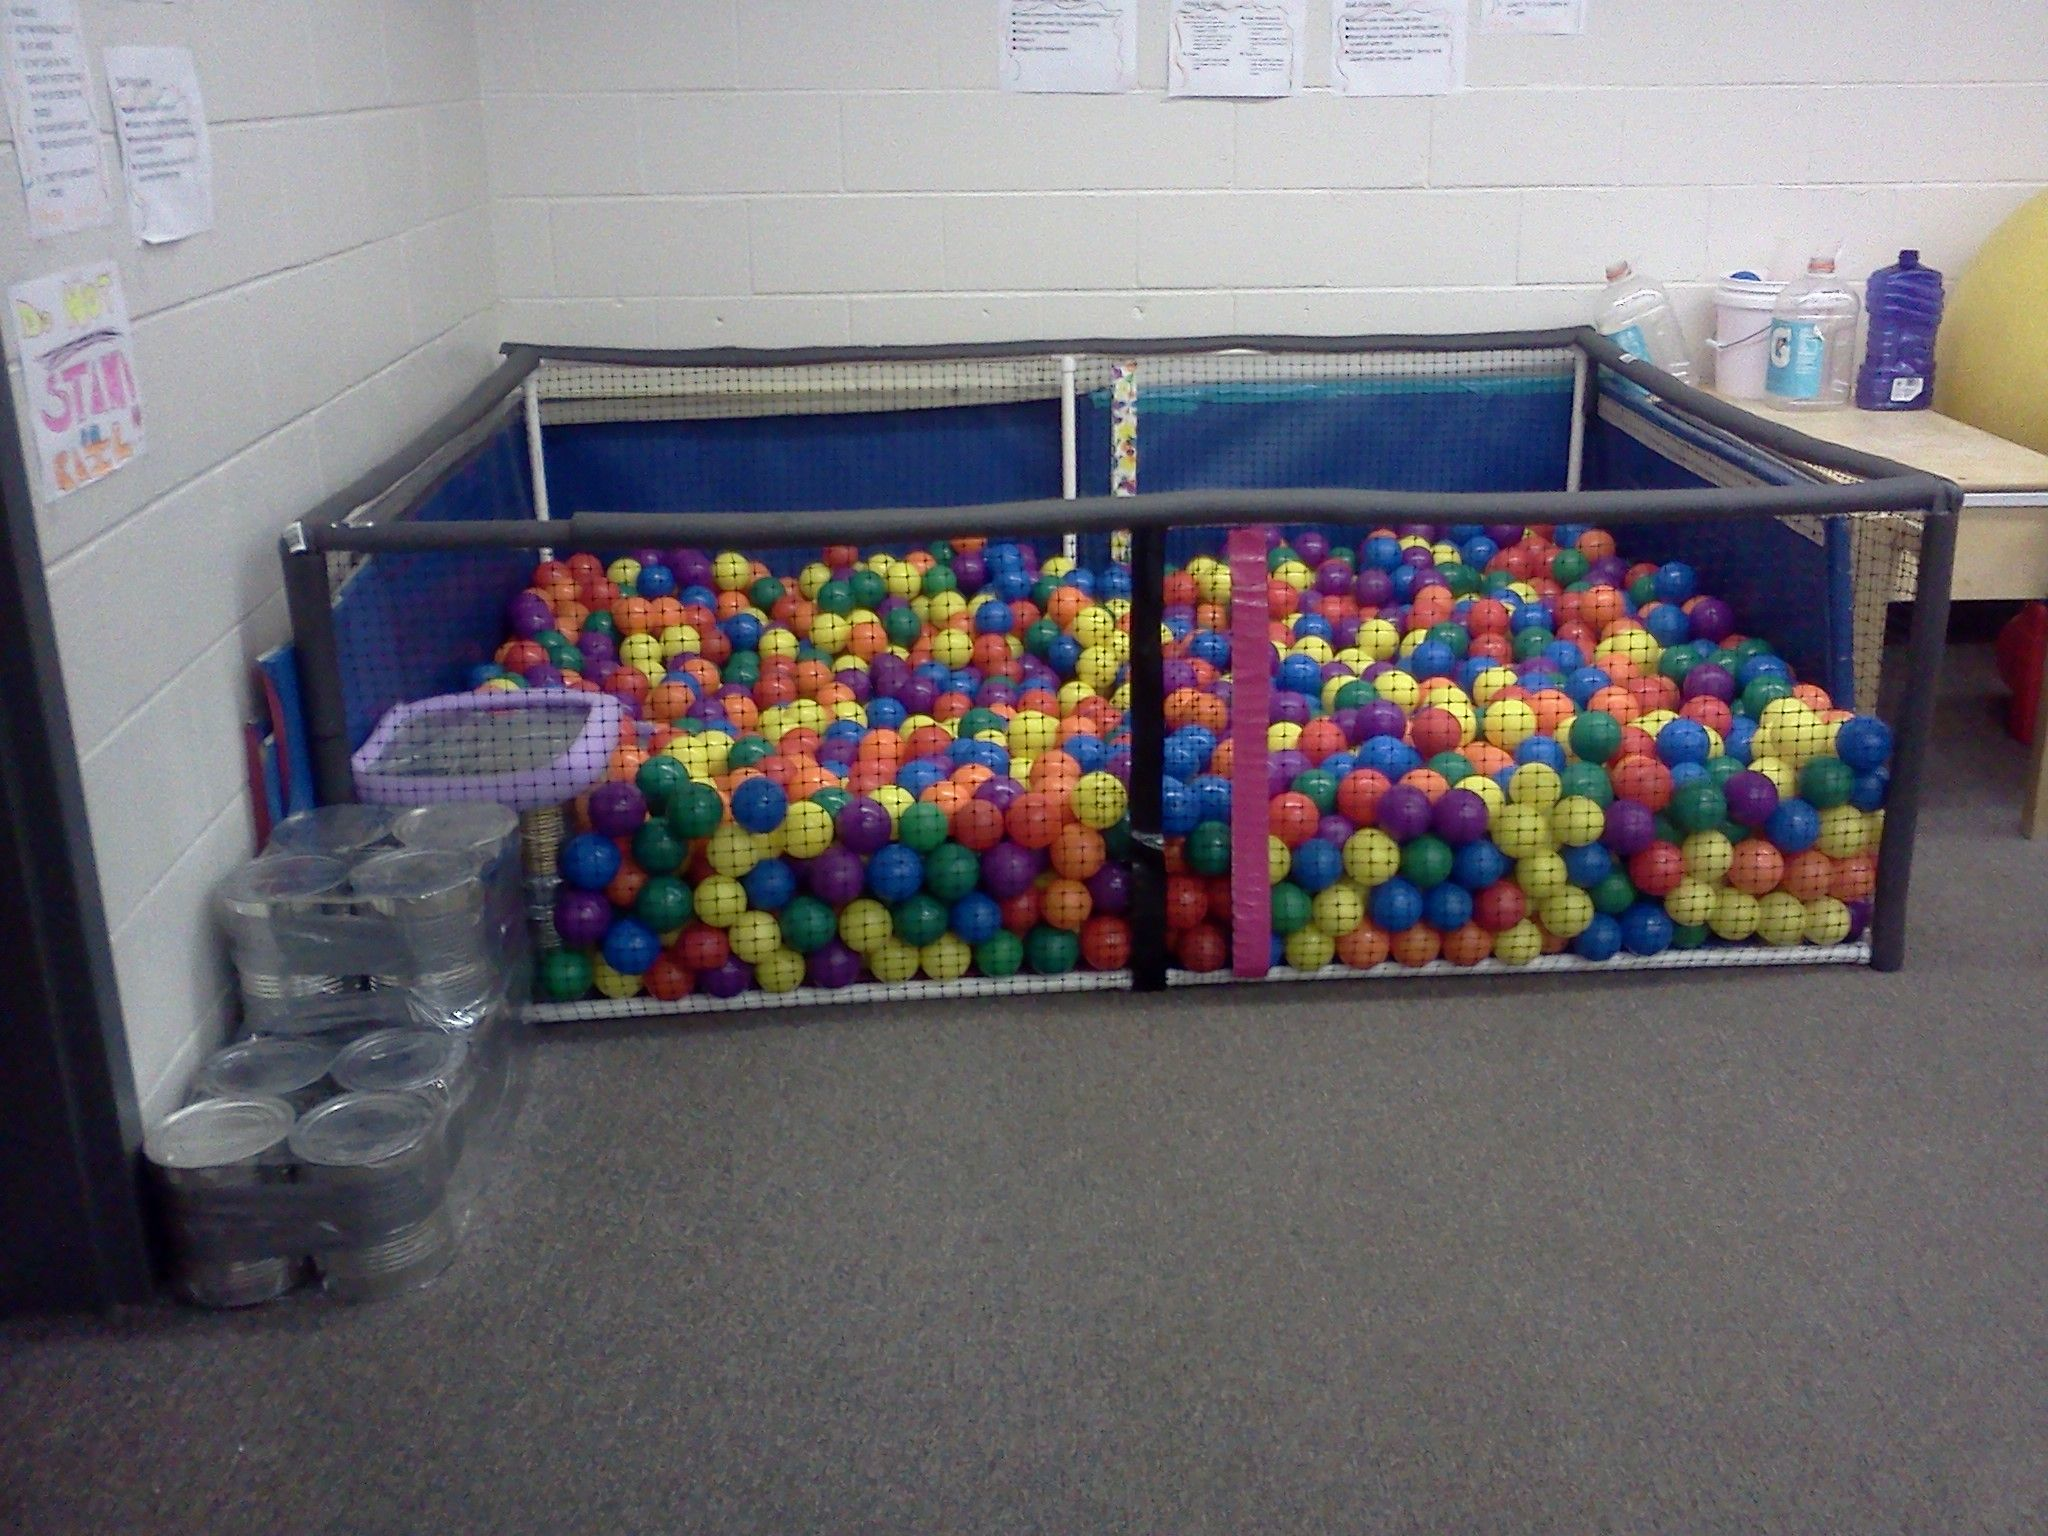 Homemade Sensory Ball Pit Less Than 100 Without The Balls